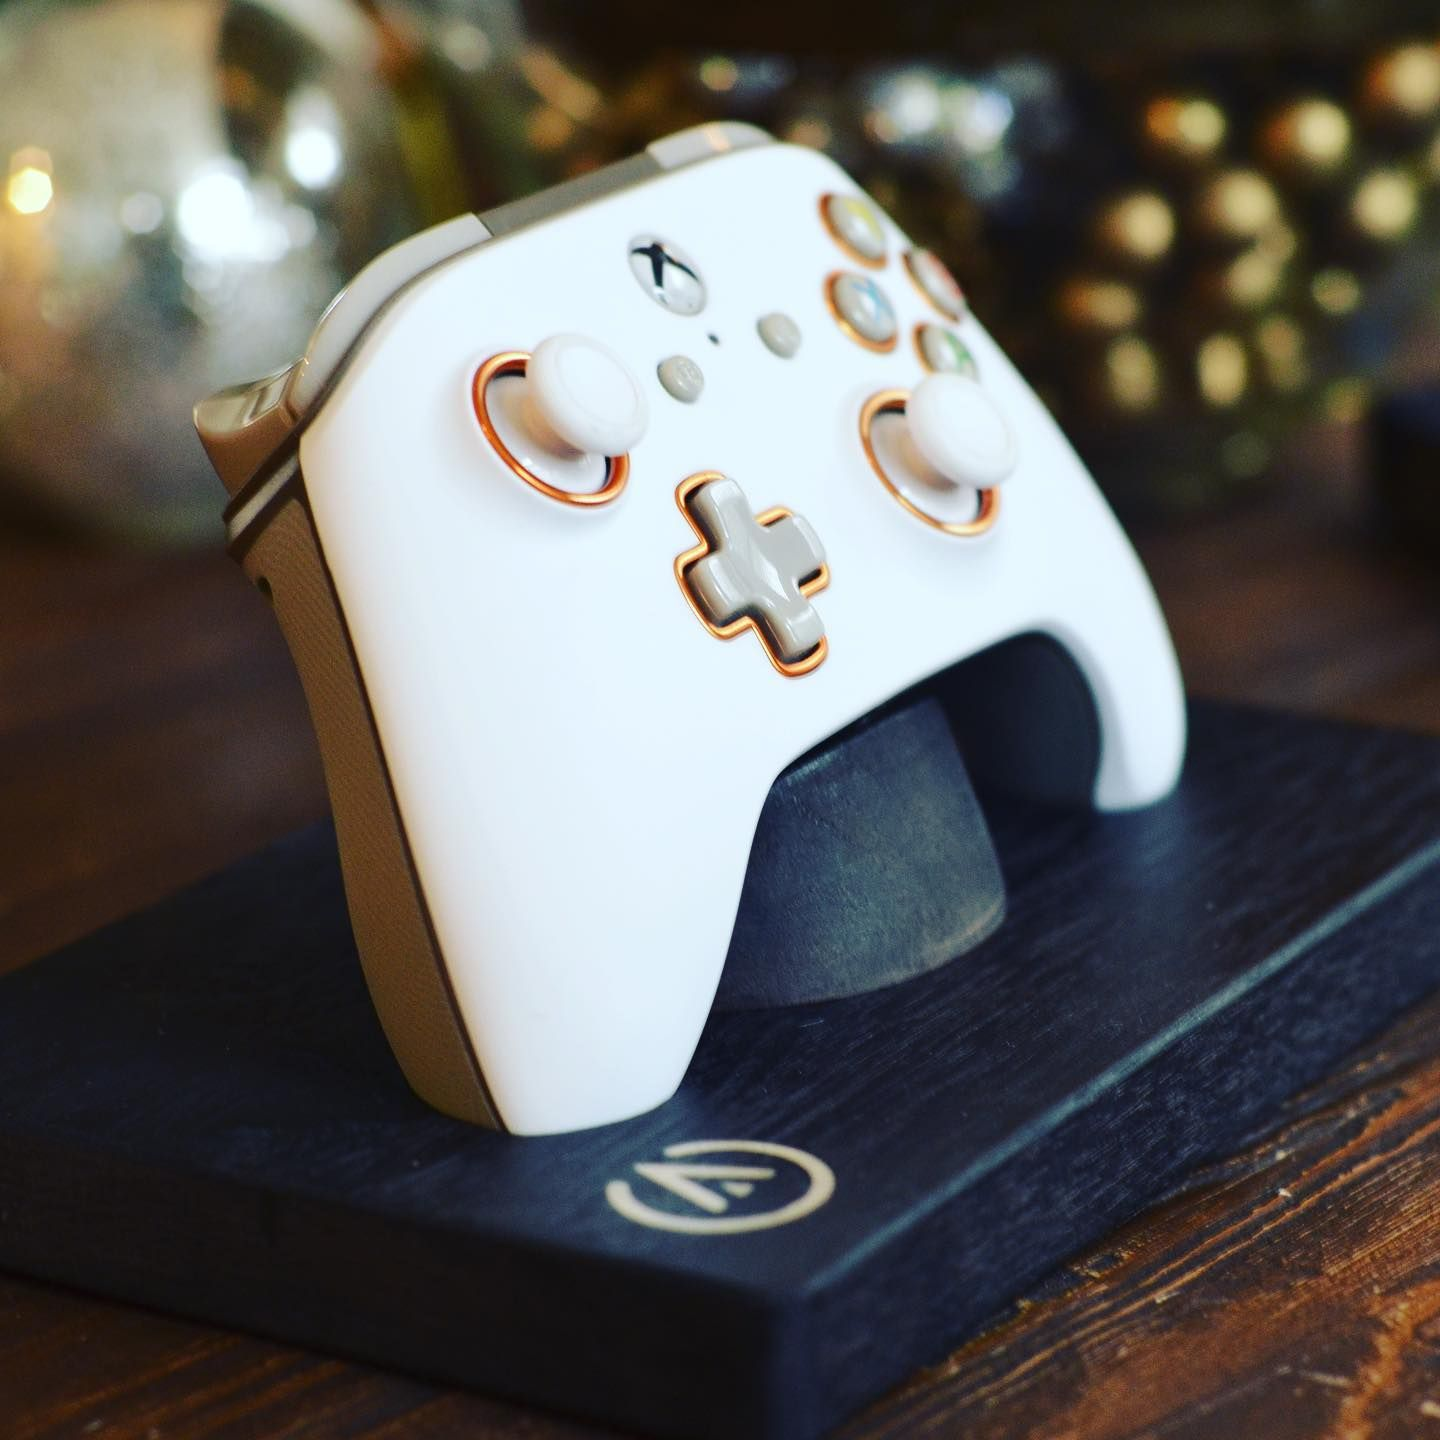 Anybody Get A New Controller For Christmas If So What Did You Get Instagram Partners Xbox Controllers Gamer Diana In 2020 Xbox Controller Gaming Console Xbox